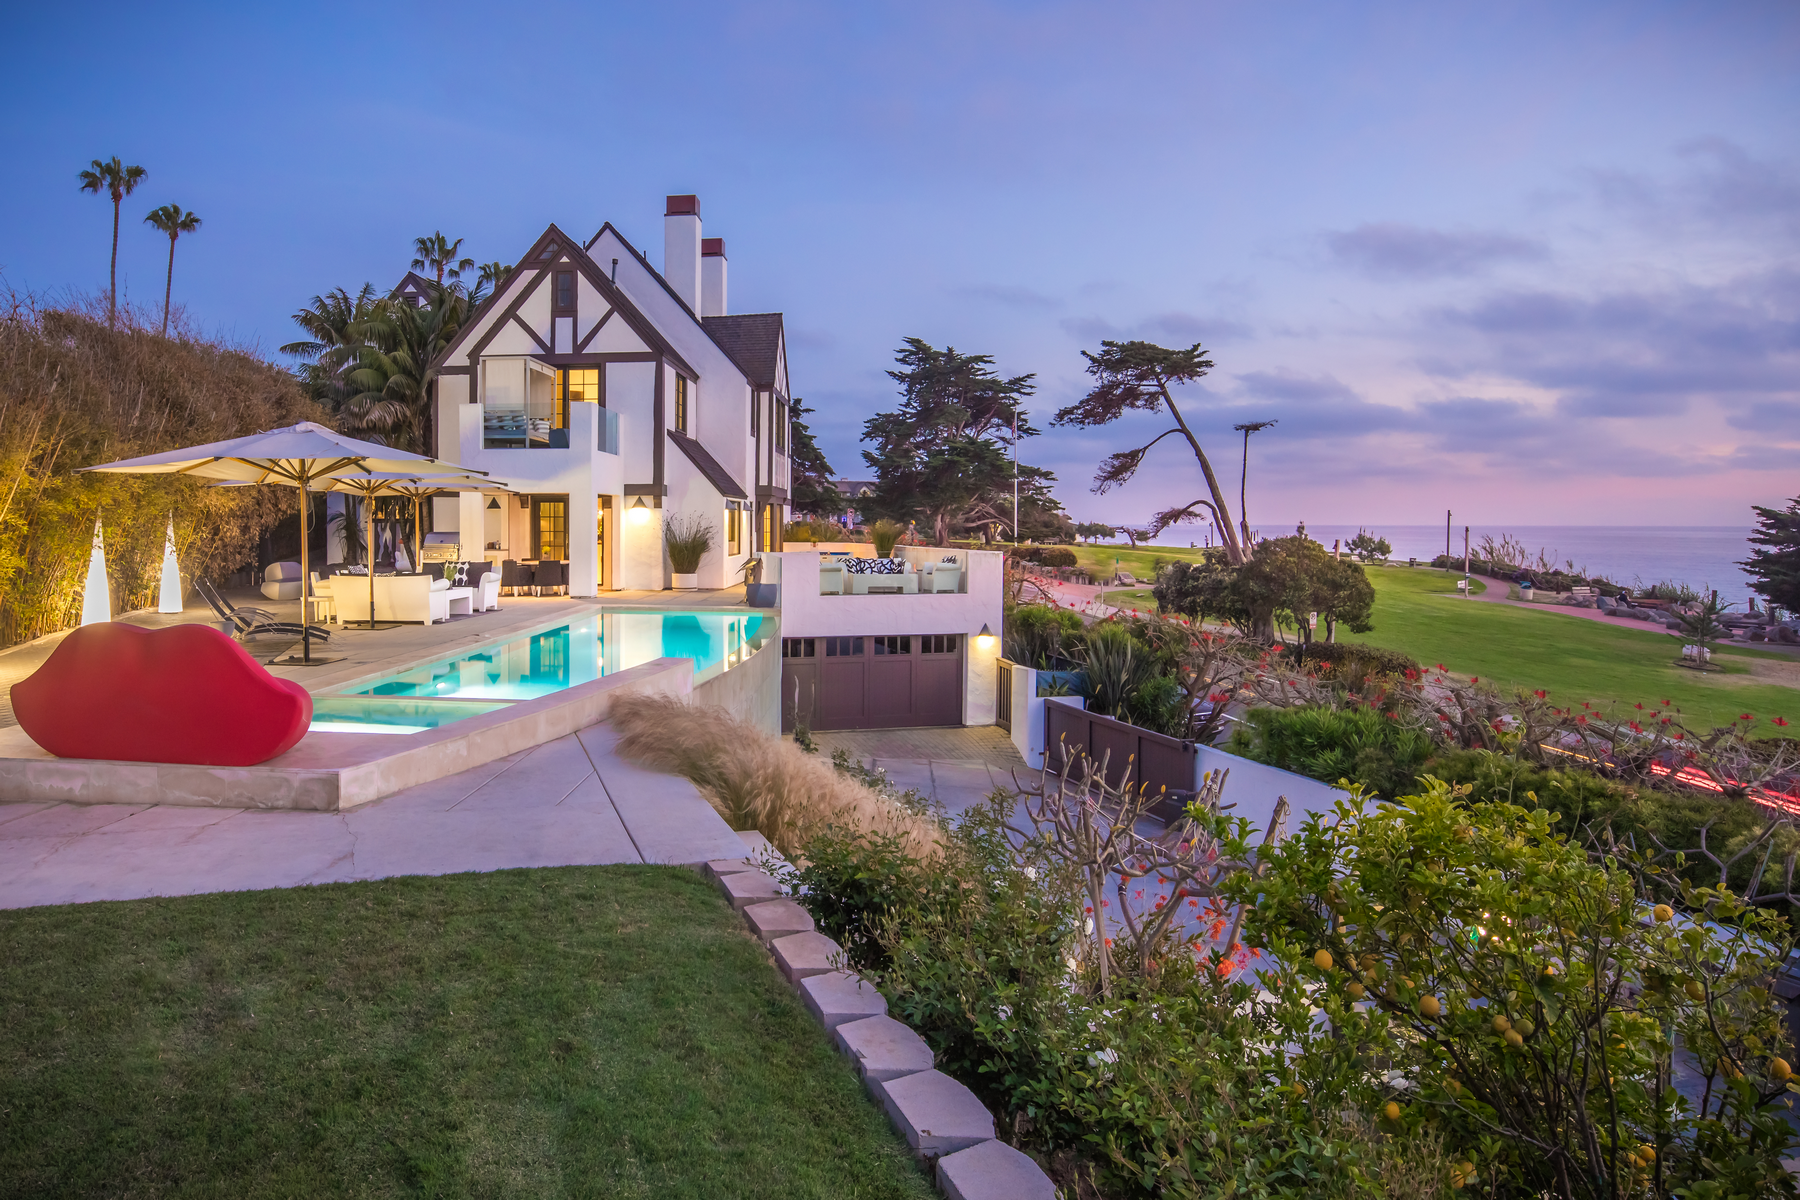 Single Family Home for Sale at 110 15th Street 110 15th Street Del Mar, California 92014 United States